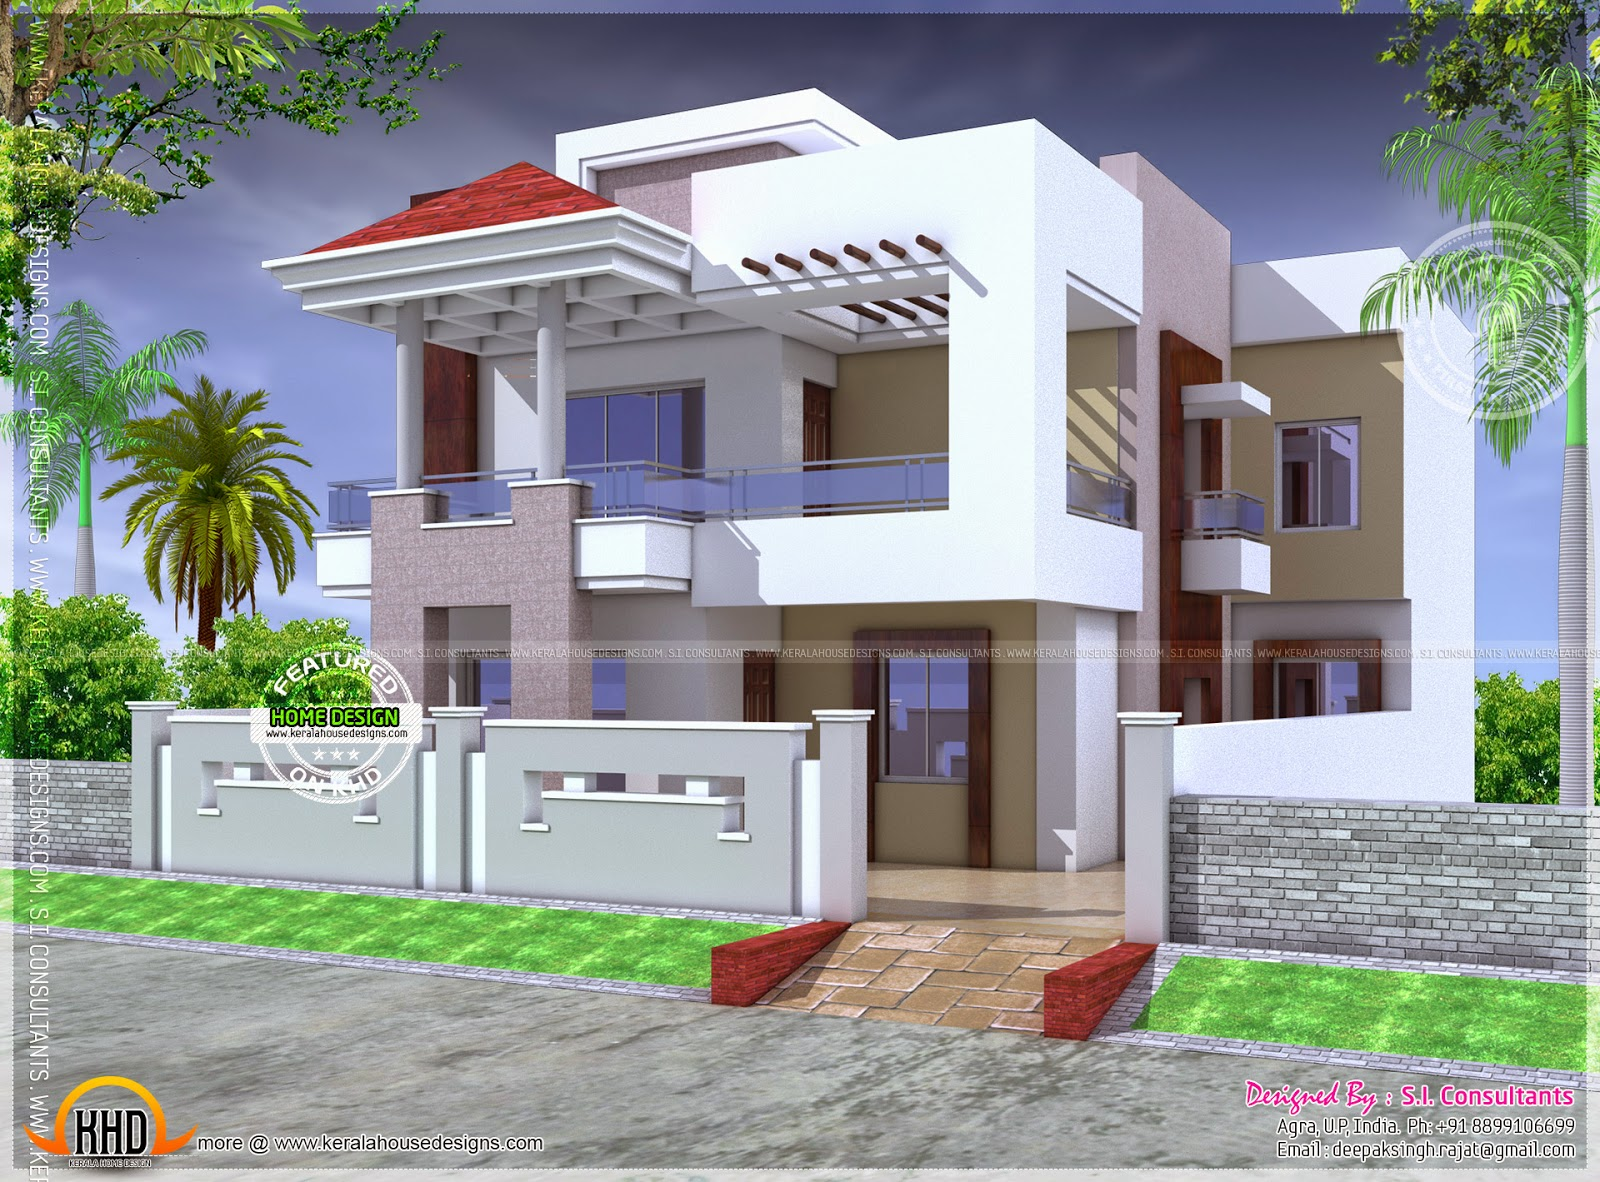 March 2014 kerala home design and floor plans for Building plans for homes in india